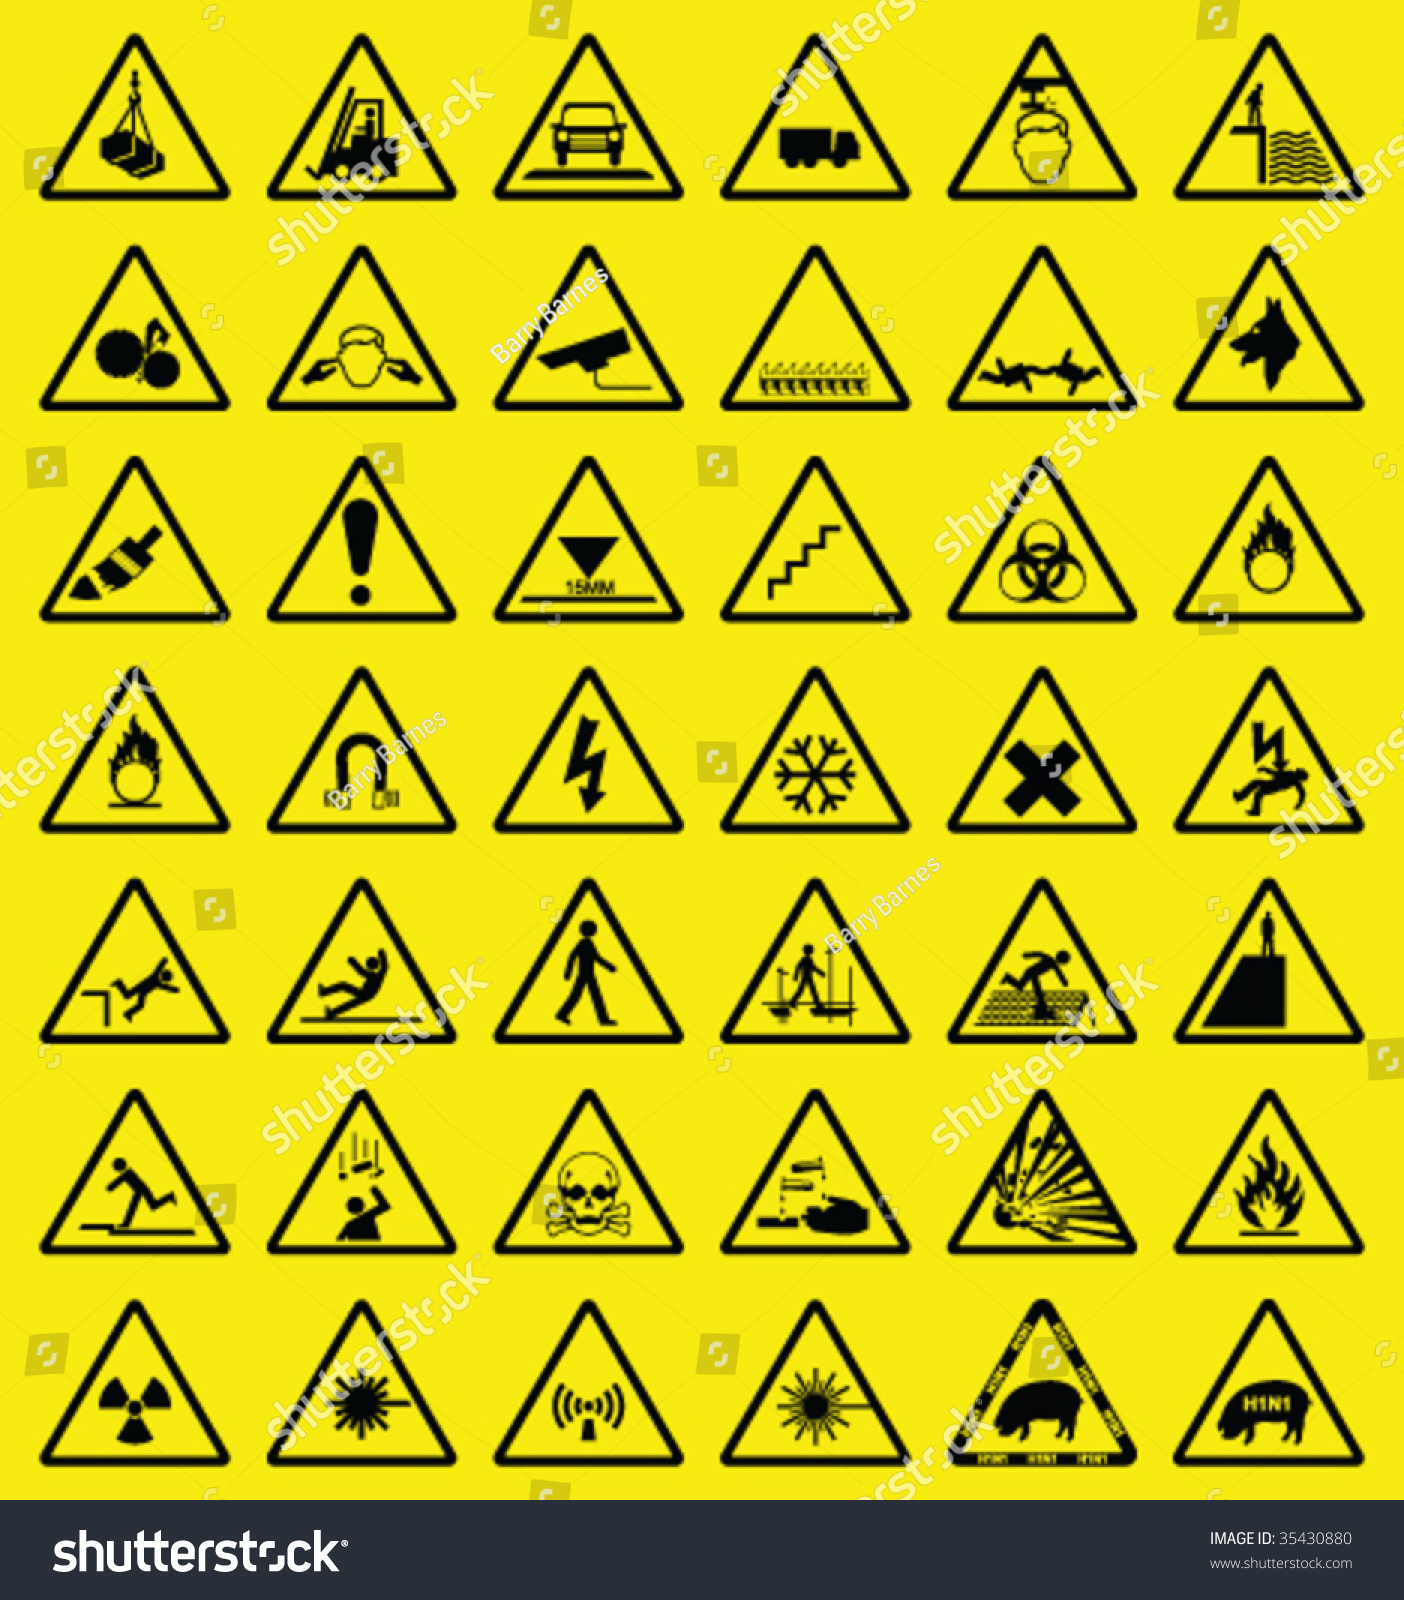 Hazard Warning Sign Collection All Signs Stock Vector 35430880 ...